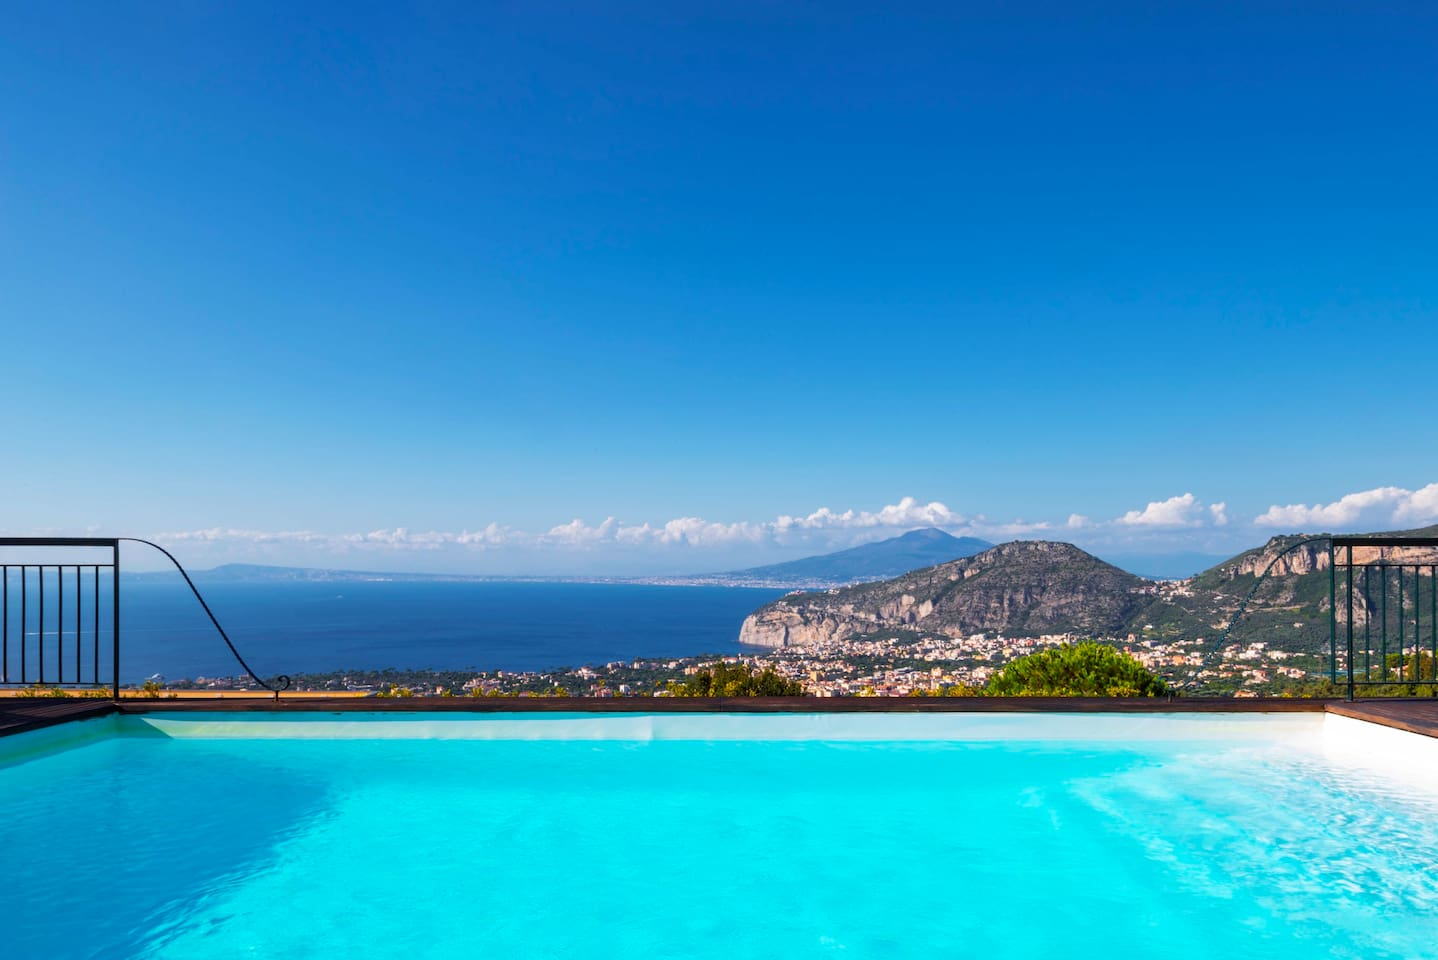 Views from the pool. Gulf of Naples, Vesuvius and Sorrento